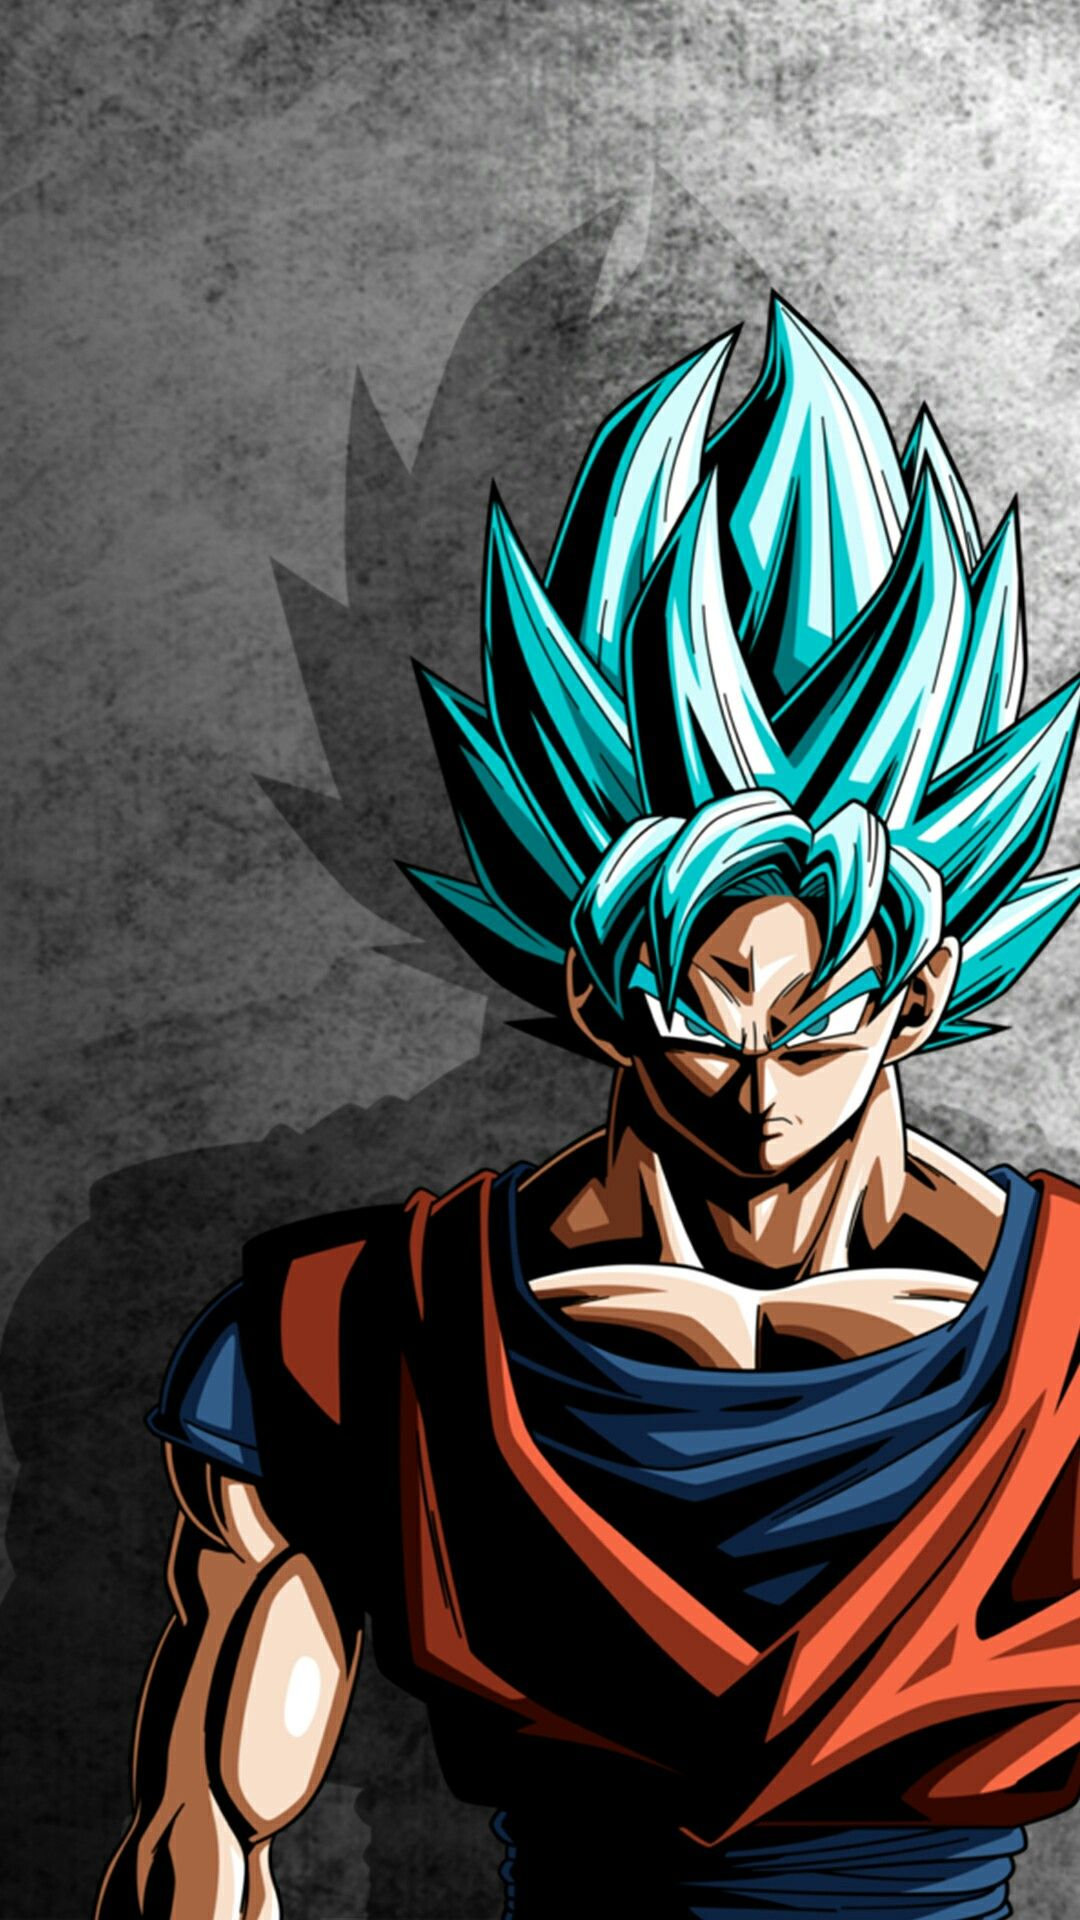 Goku Super Saiyan Blue Goku Wallpaper Dragon Ball Dragon